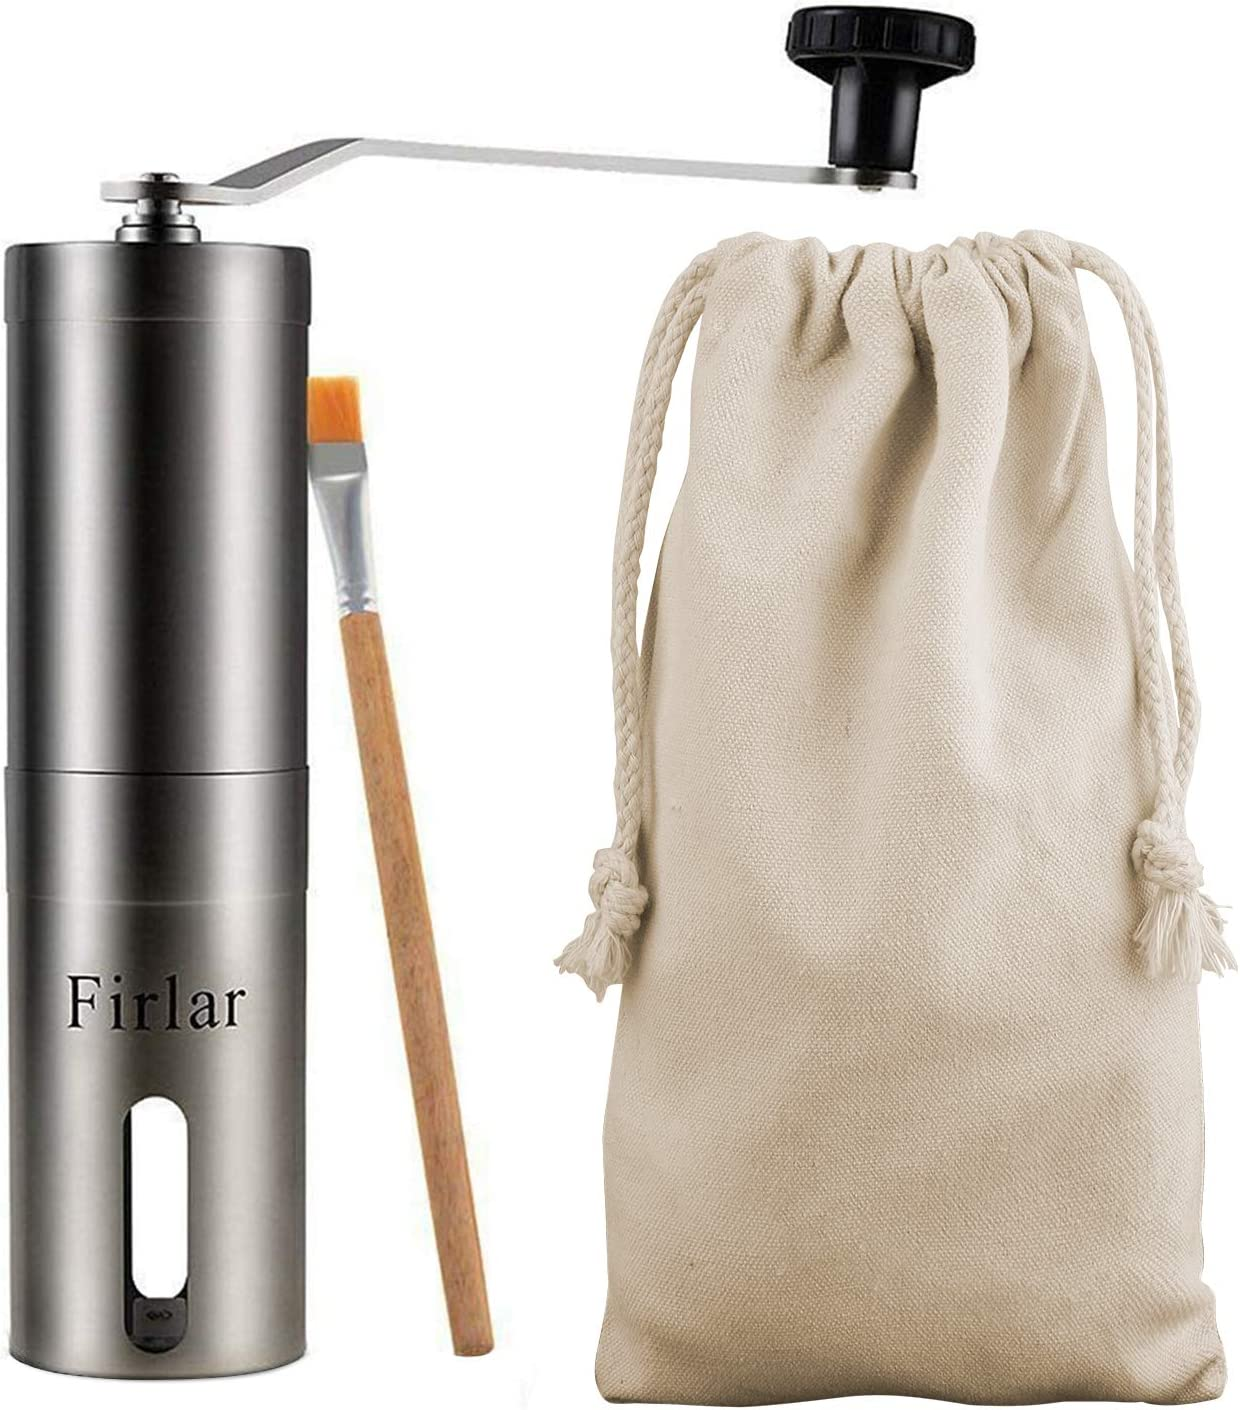 Firlar Premium Manual Stainless Steel Coffee Grinder